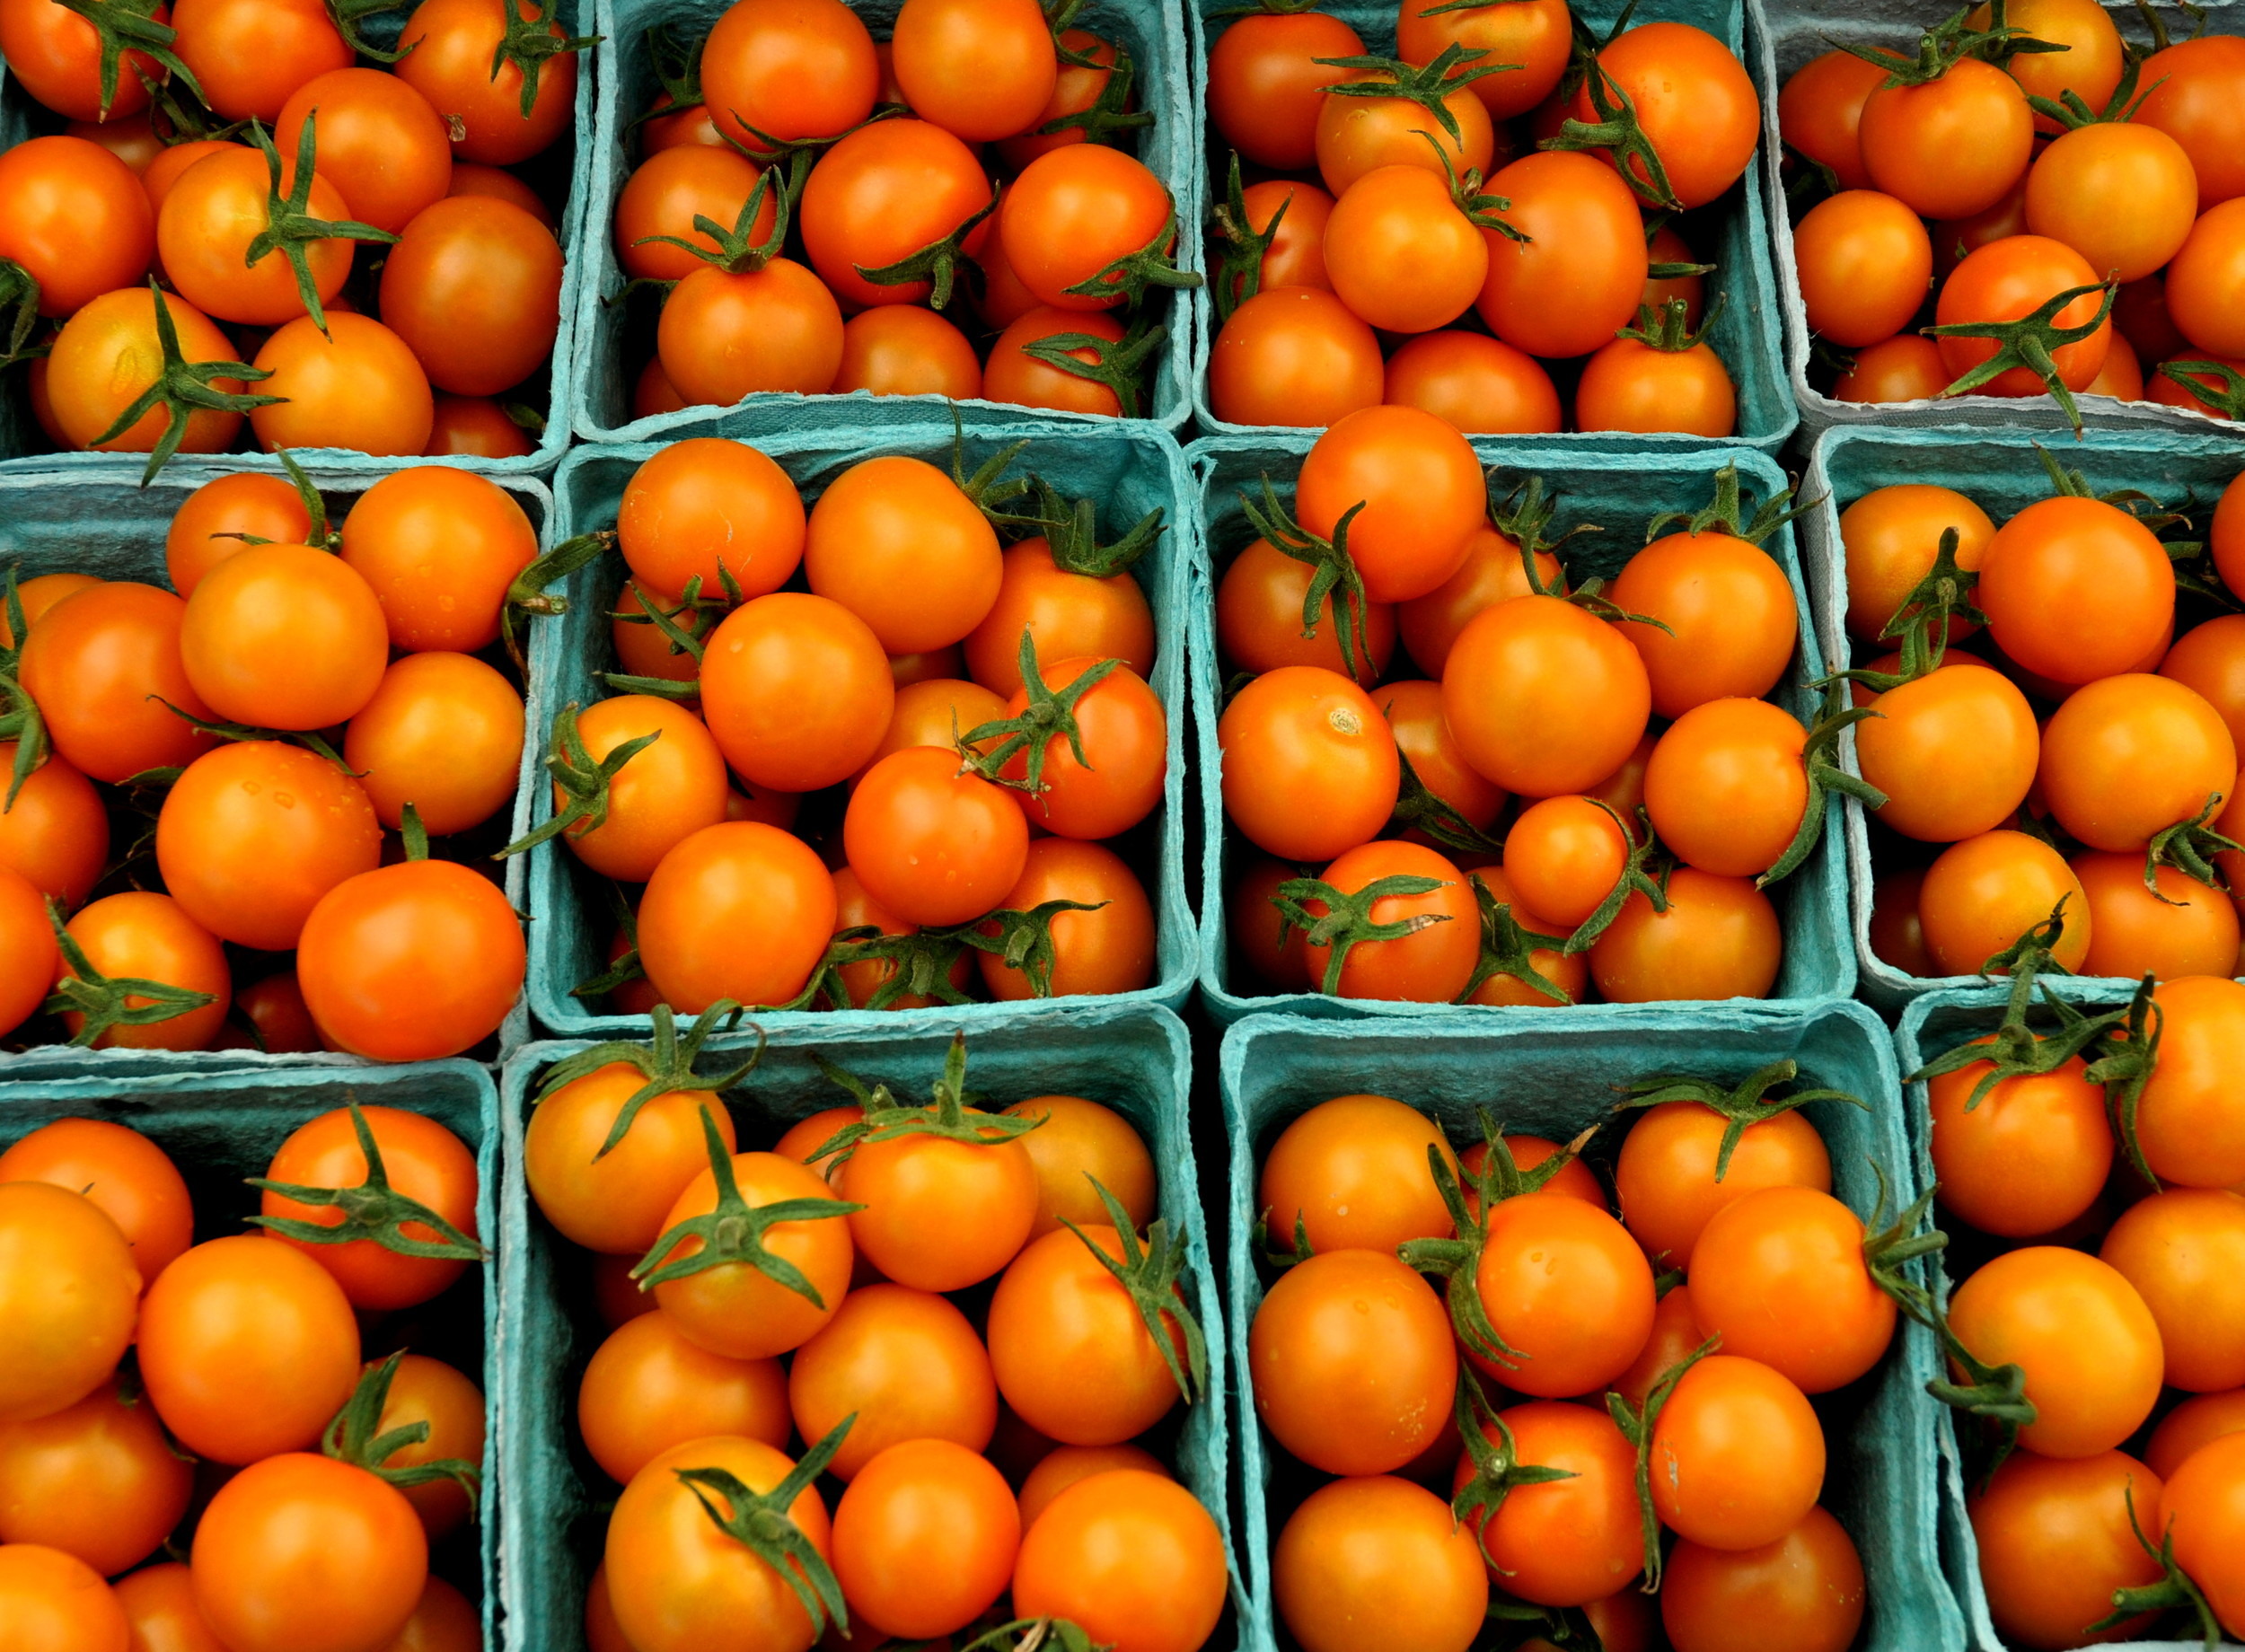 Sungold cherry tomatoes from One Leaf Farm. Photo copyright 2014 by Zachary D. Lyons.